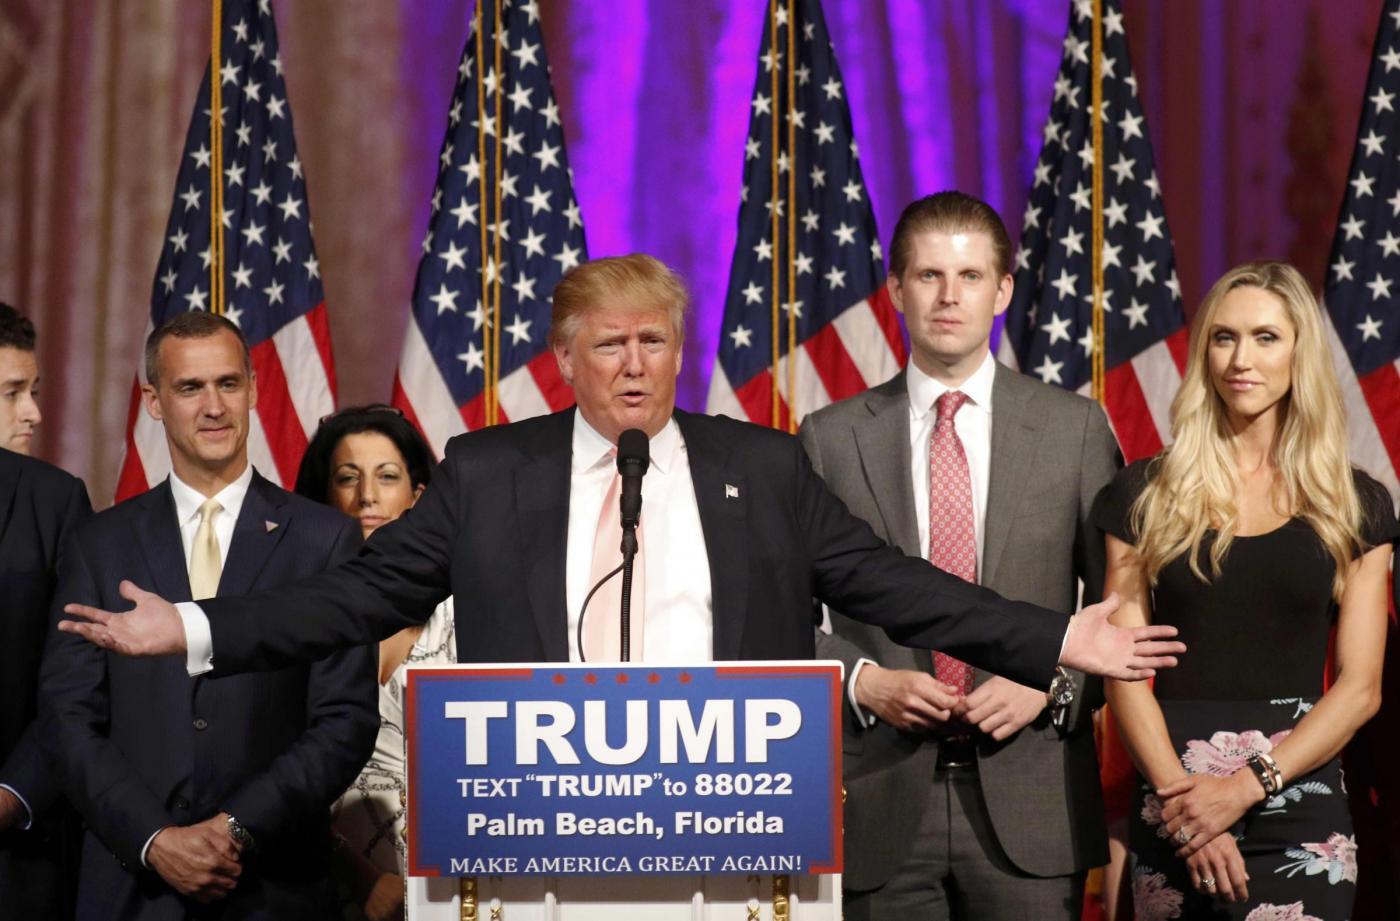 Usa 2016 , Trump e Hillary Clinton avanzano nel super tuesday